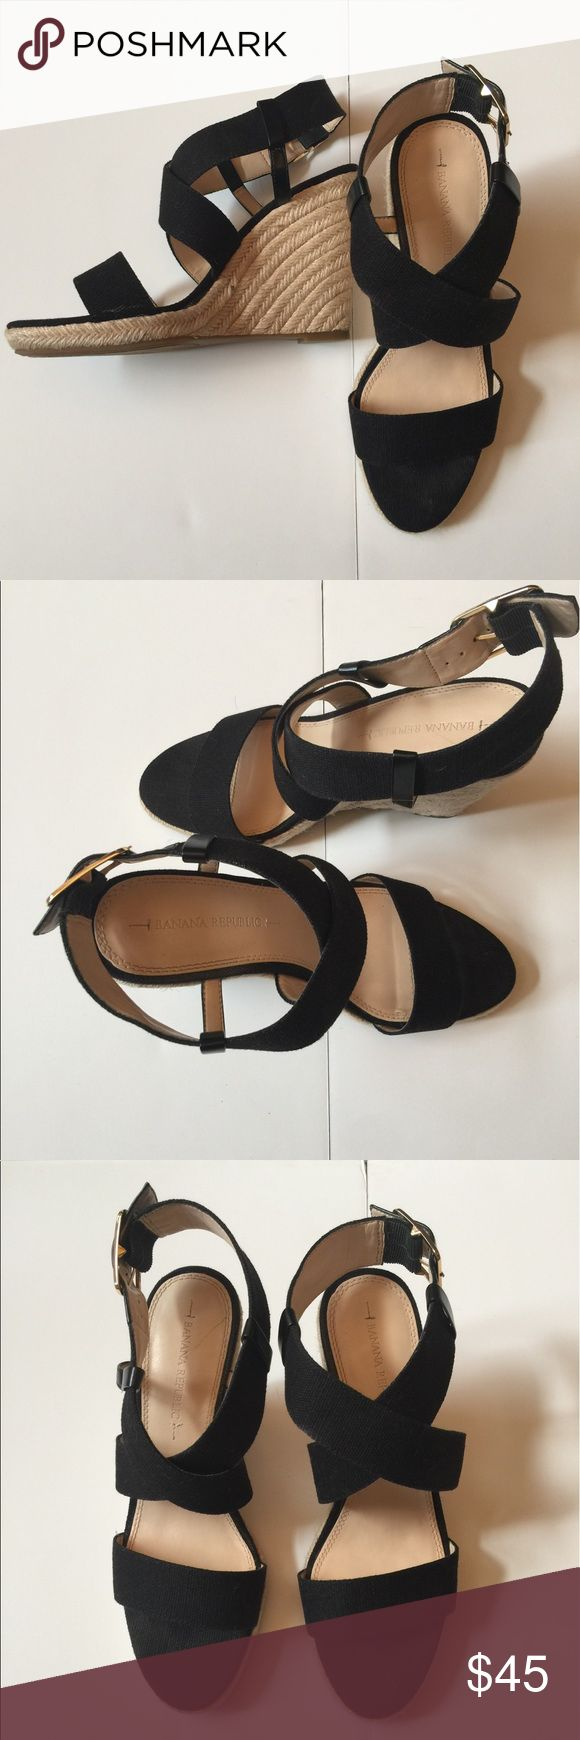 "Banana Republic Black Canvas Wedge Sandals Fabulous Black Canvas Wedge Sandals with Leather Trim from Banana Republic. Excellent Almost New Condition! Worn once. 4"" wedge Banana Republic Shoes Wedges"